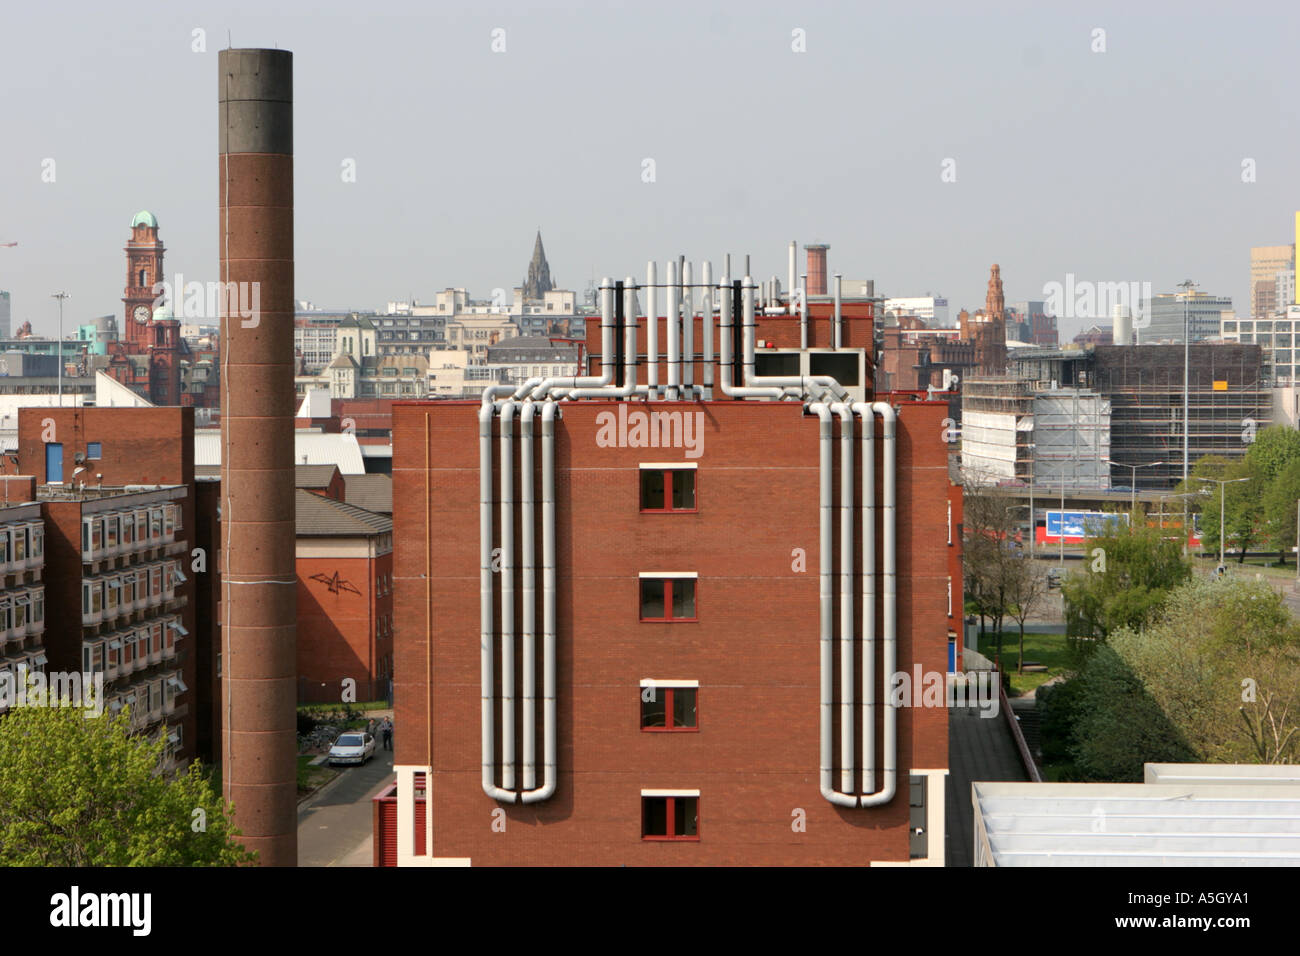 Materials Science Centre University of Manchester UK Stock Photo